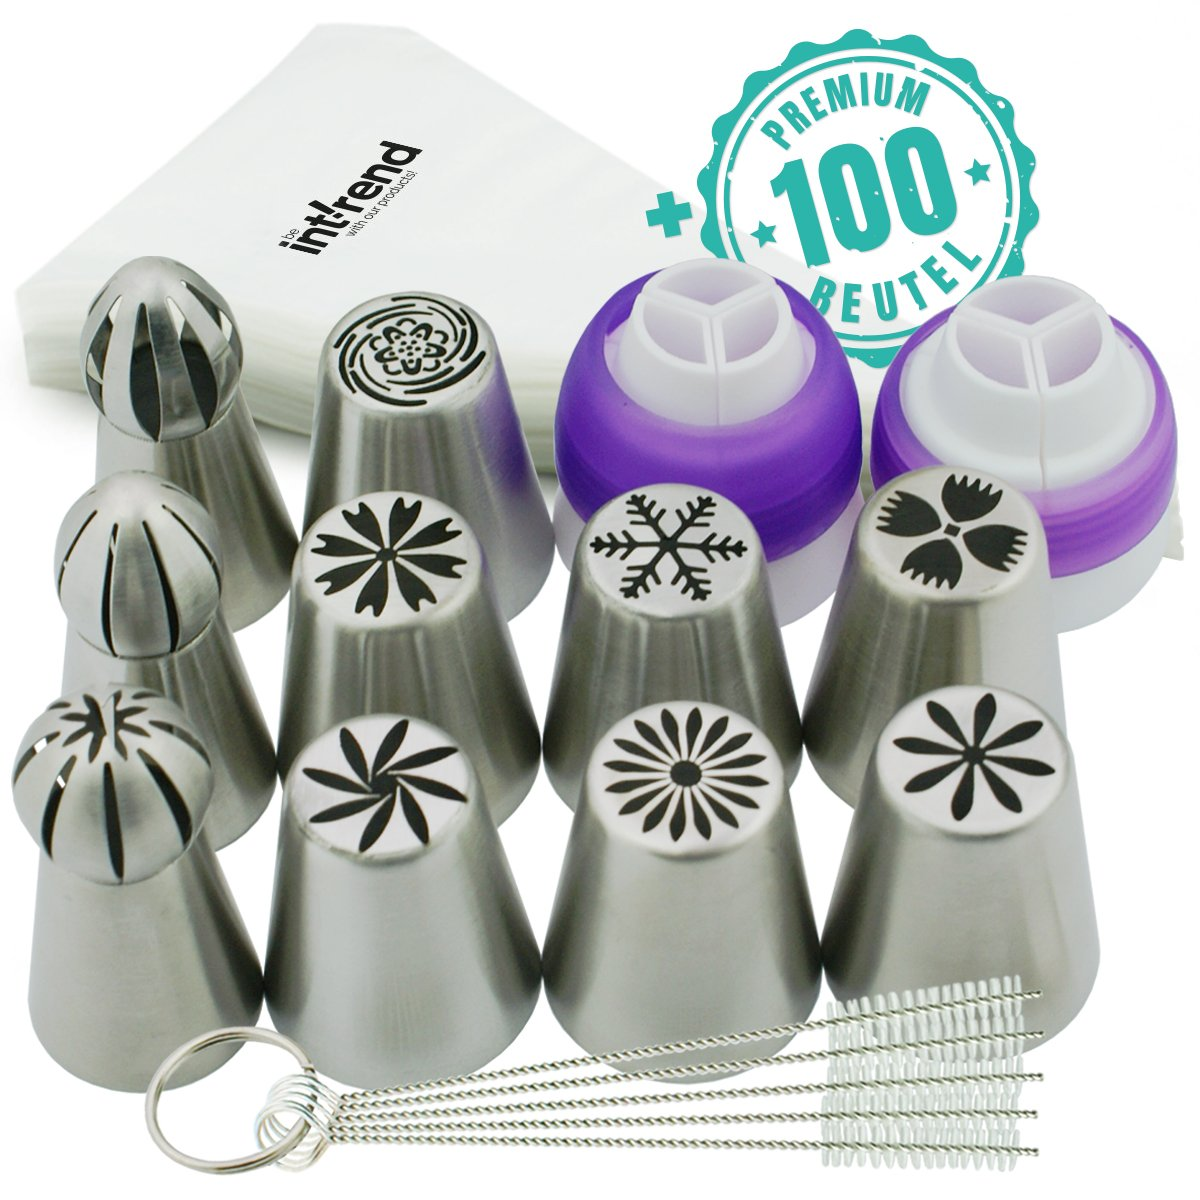 int!rend Russian Nozzles Set Professional Standard │ 10 Seamlessly Crafted Spray Nozzles, 2 Colour Adapters for up to 3 Colours per Flower, Five Cleaning Brushes and 100 Disposable Piping Bags